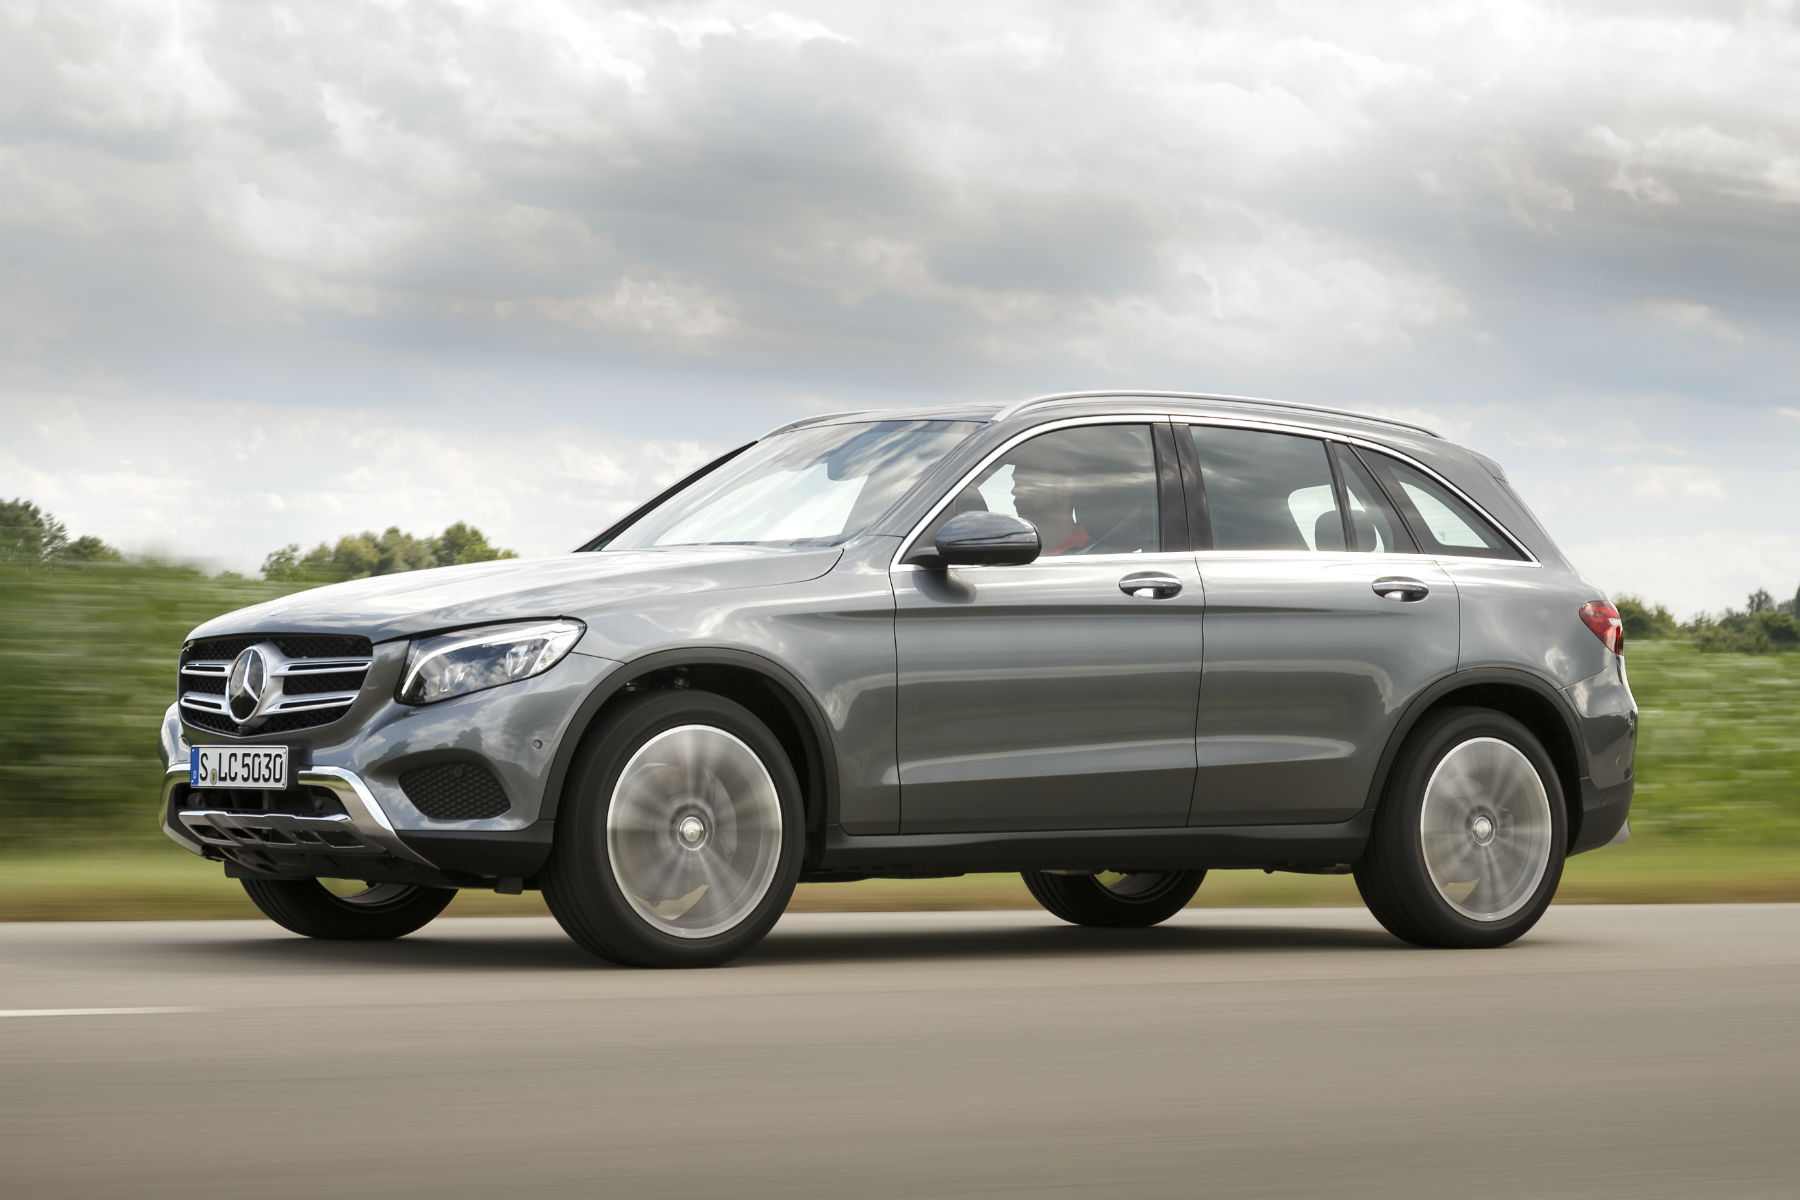 2017-Mercedes-Benz-GLC-Images-and-Specifications